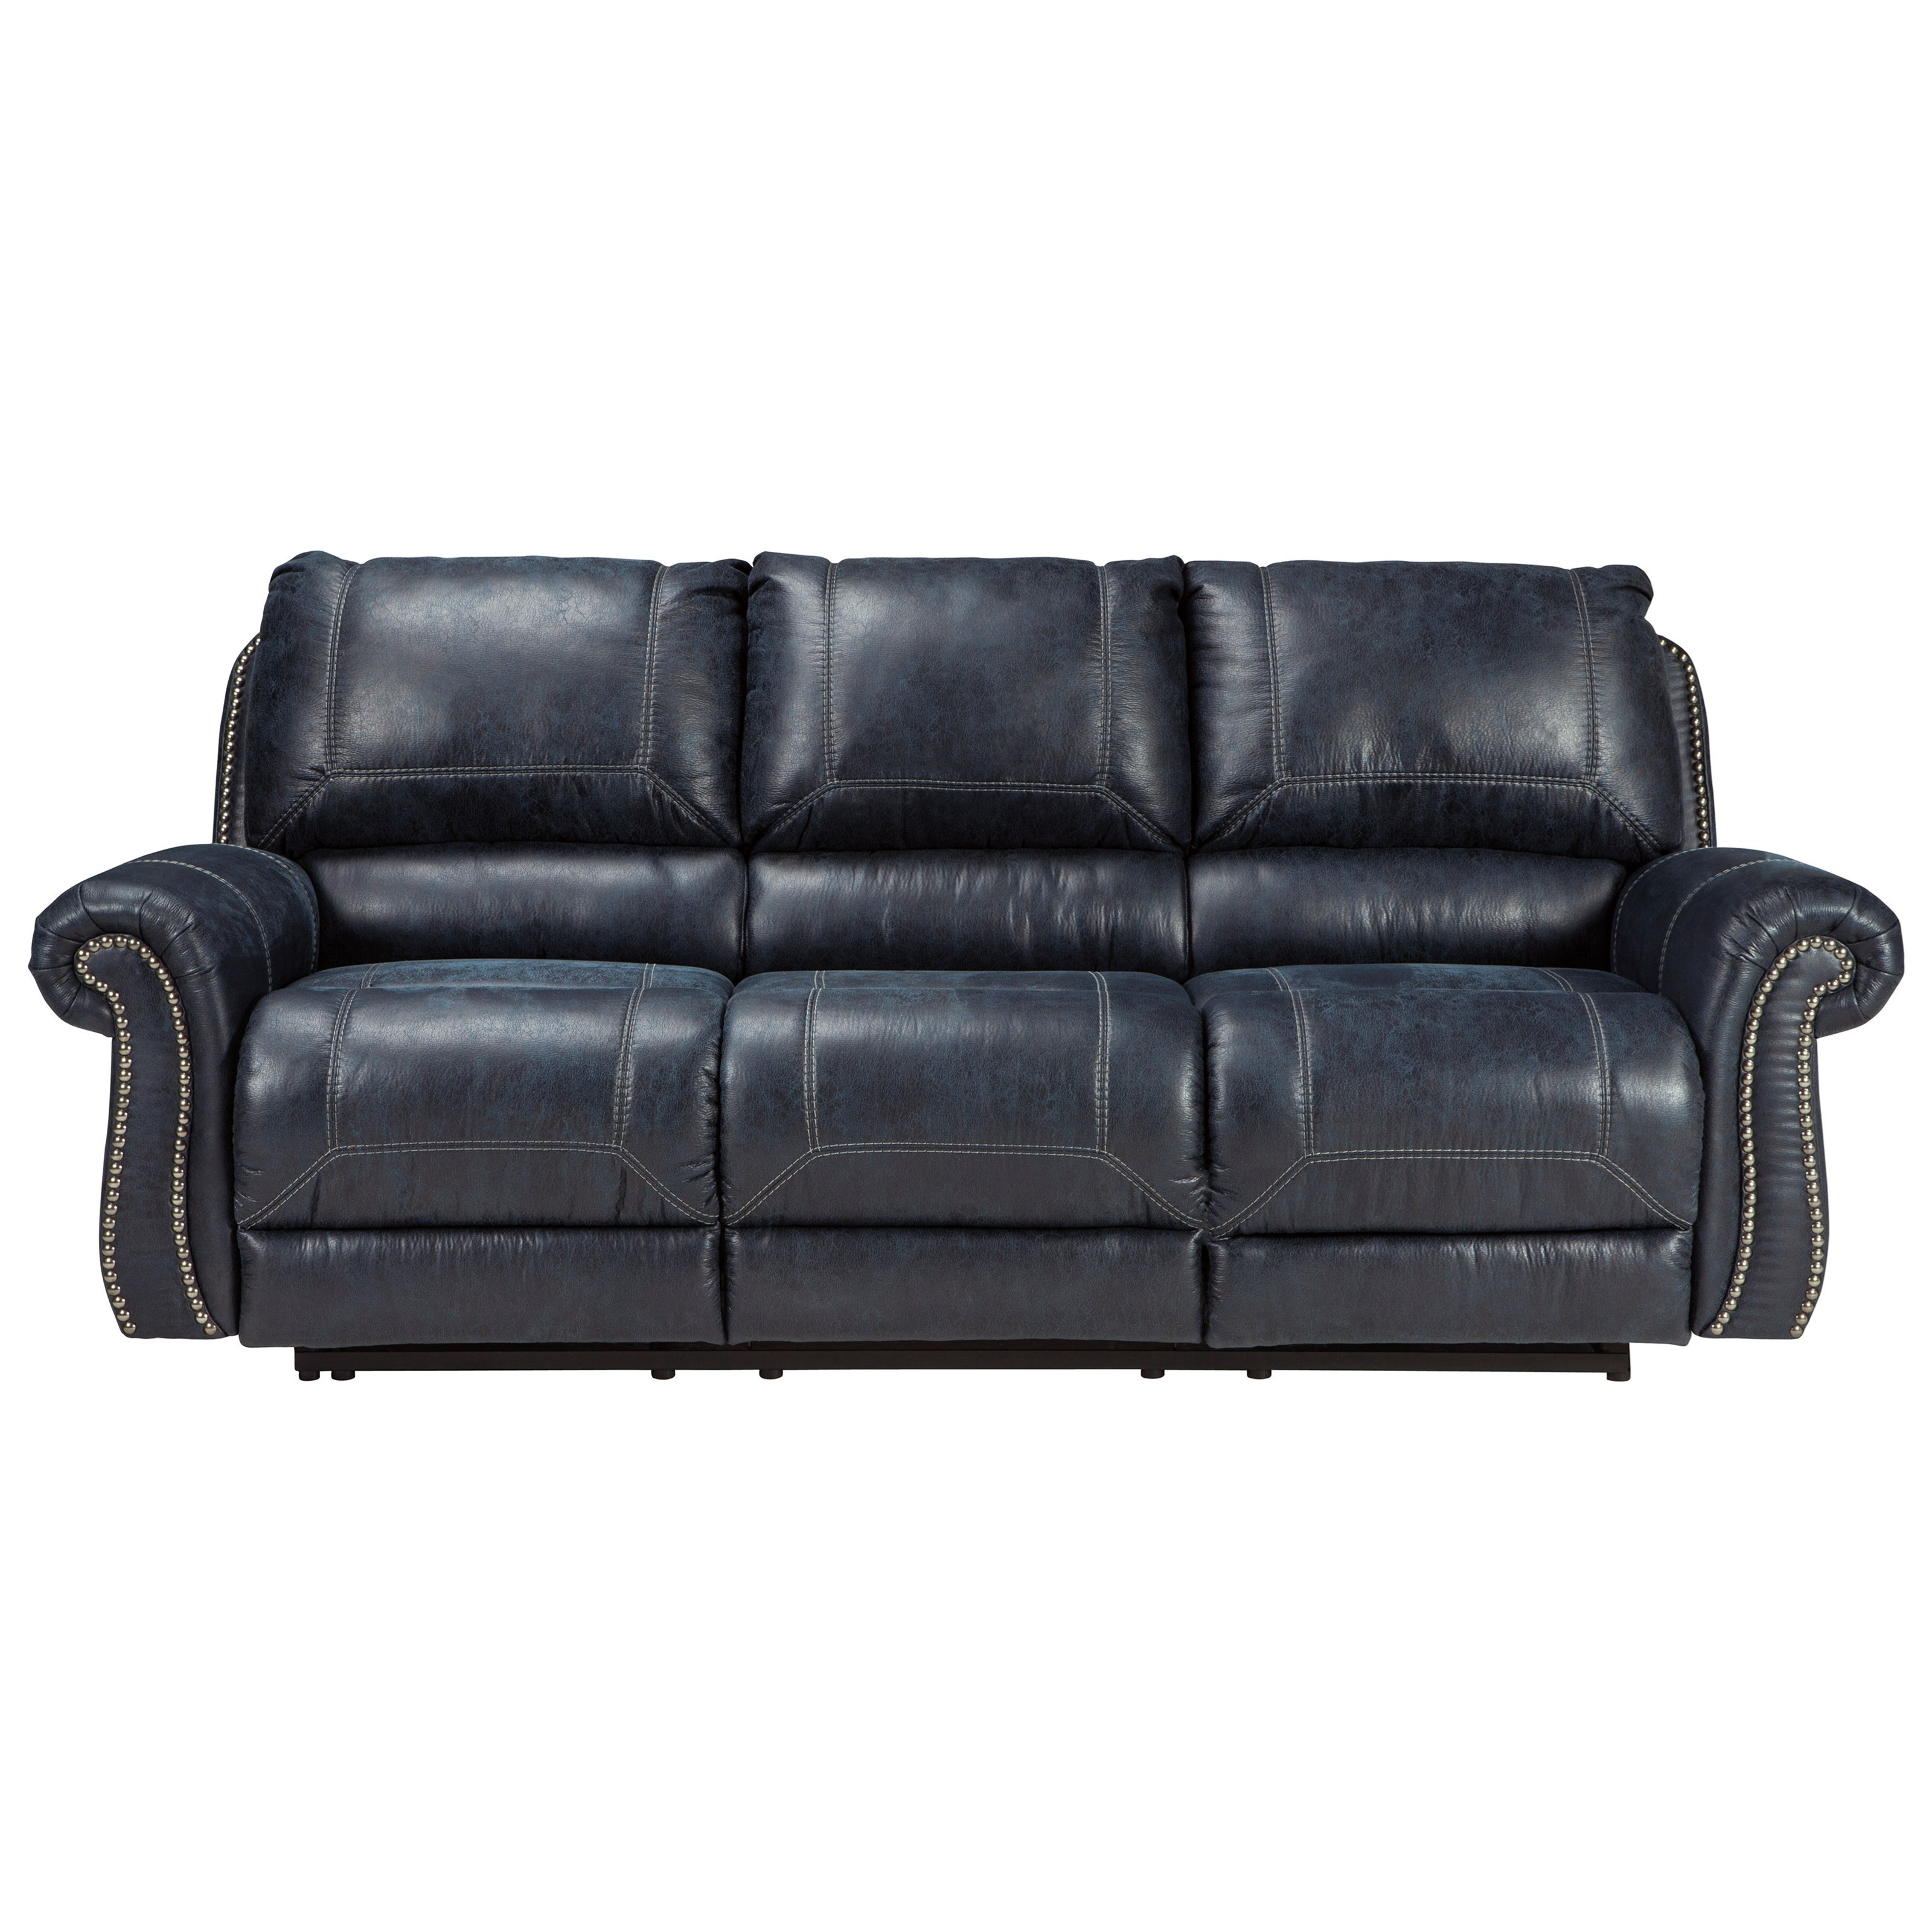 Signature Design by Ashley Milhaven Reclining Sofa with Rolled Arms & Nailhead Trim Wayside